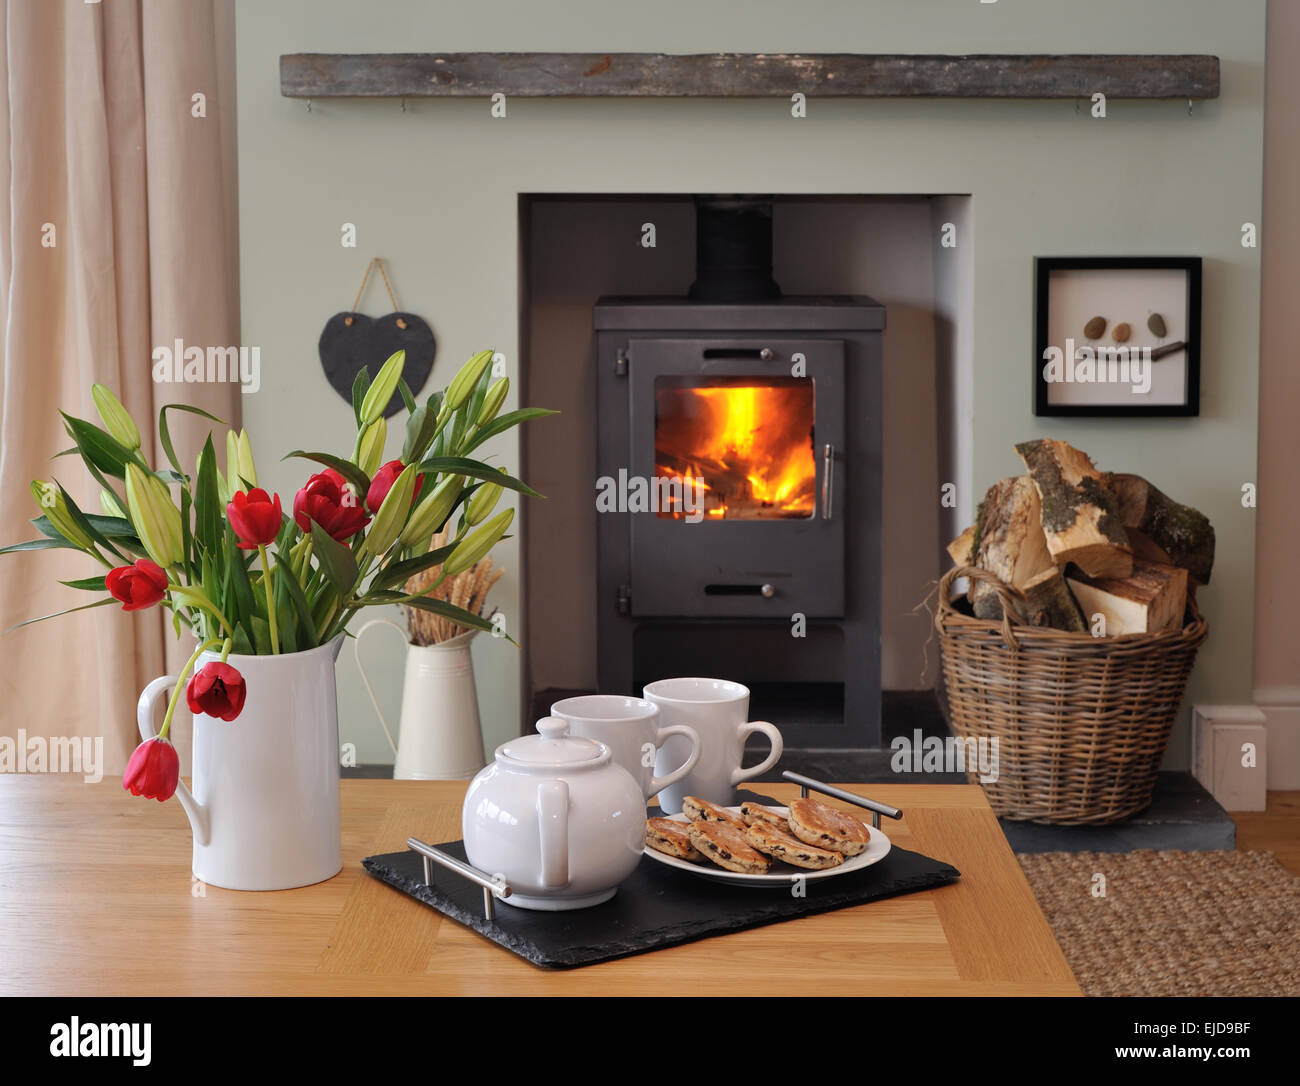 Interior design fireplace with vase of flowers and tea - Stock Image